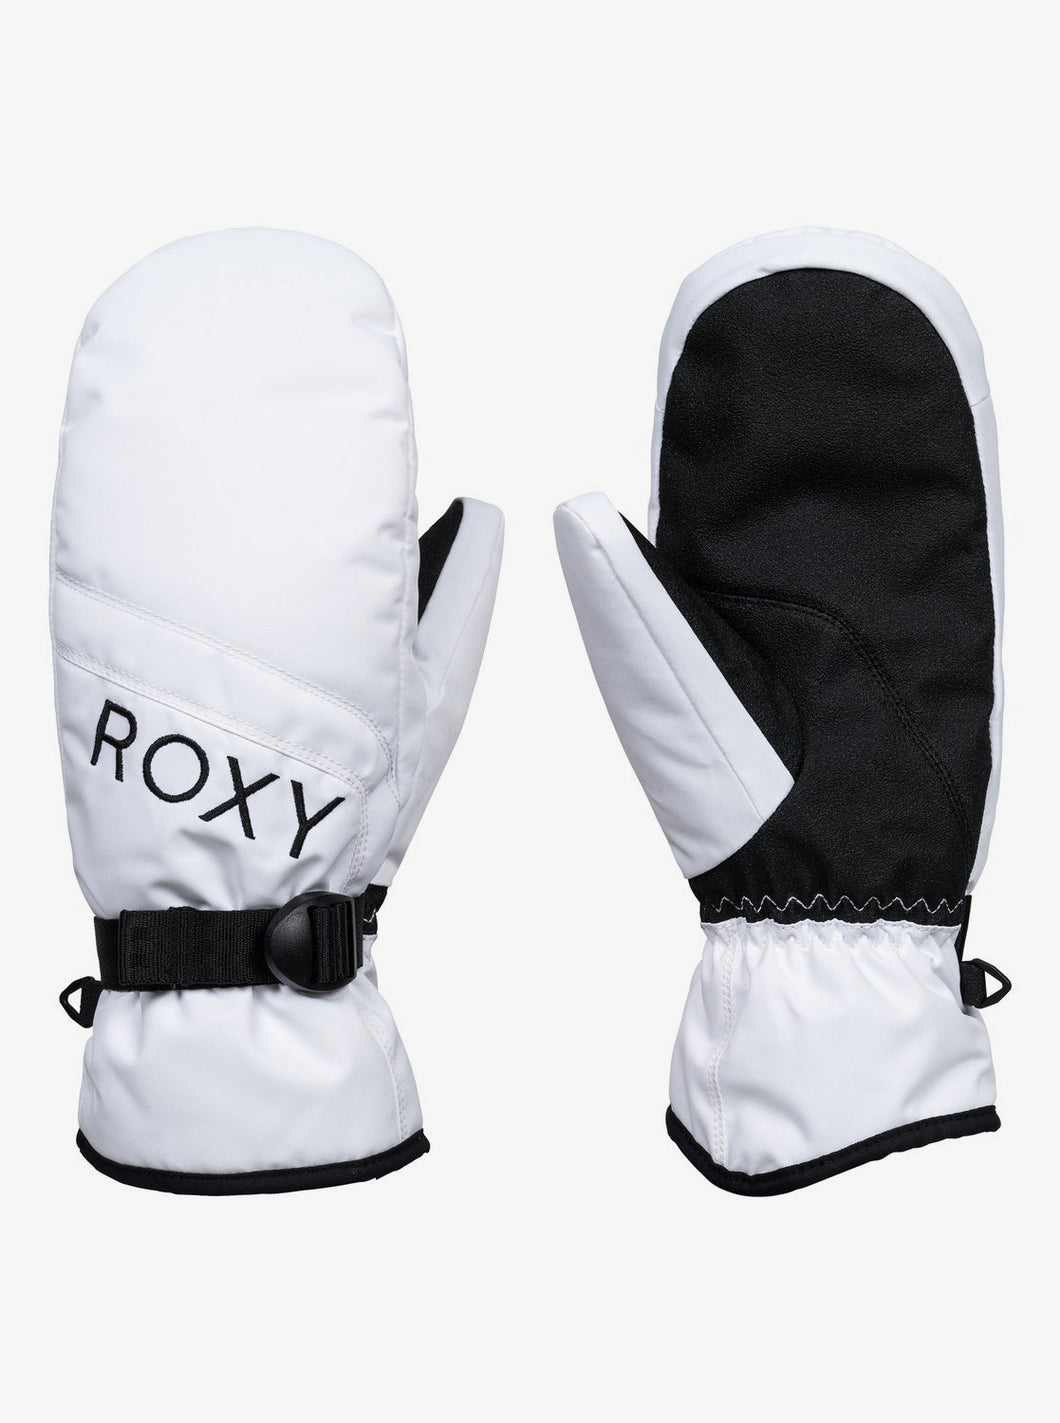 Roxy Jetty Solid Snow Mitts White Front and Back View